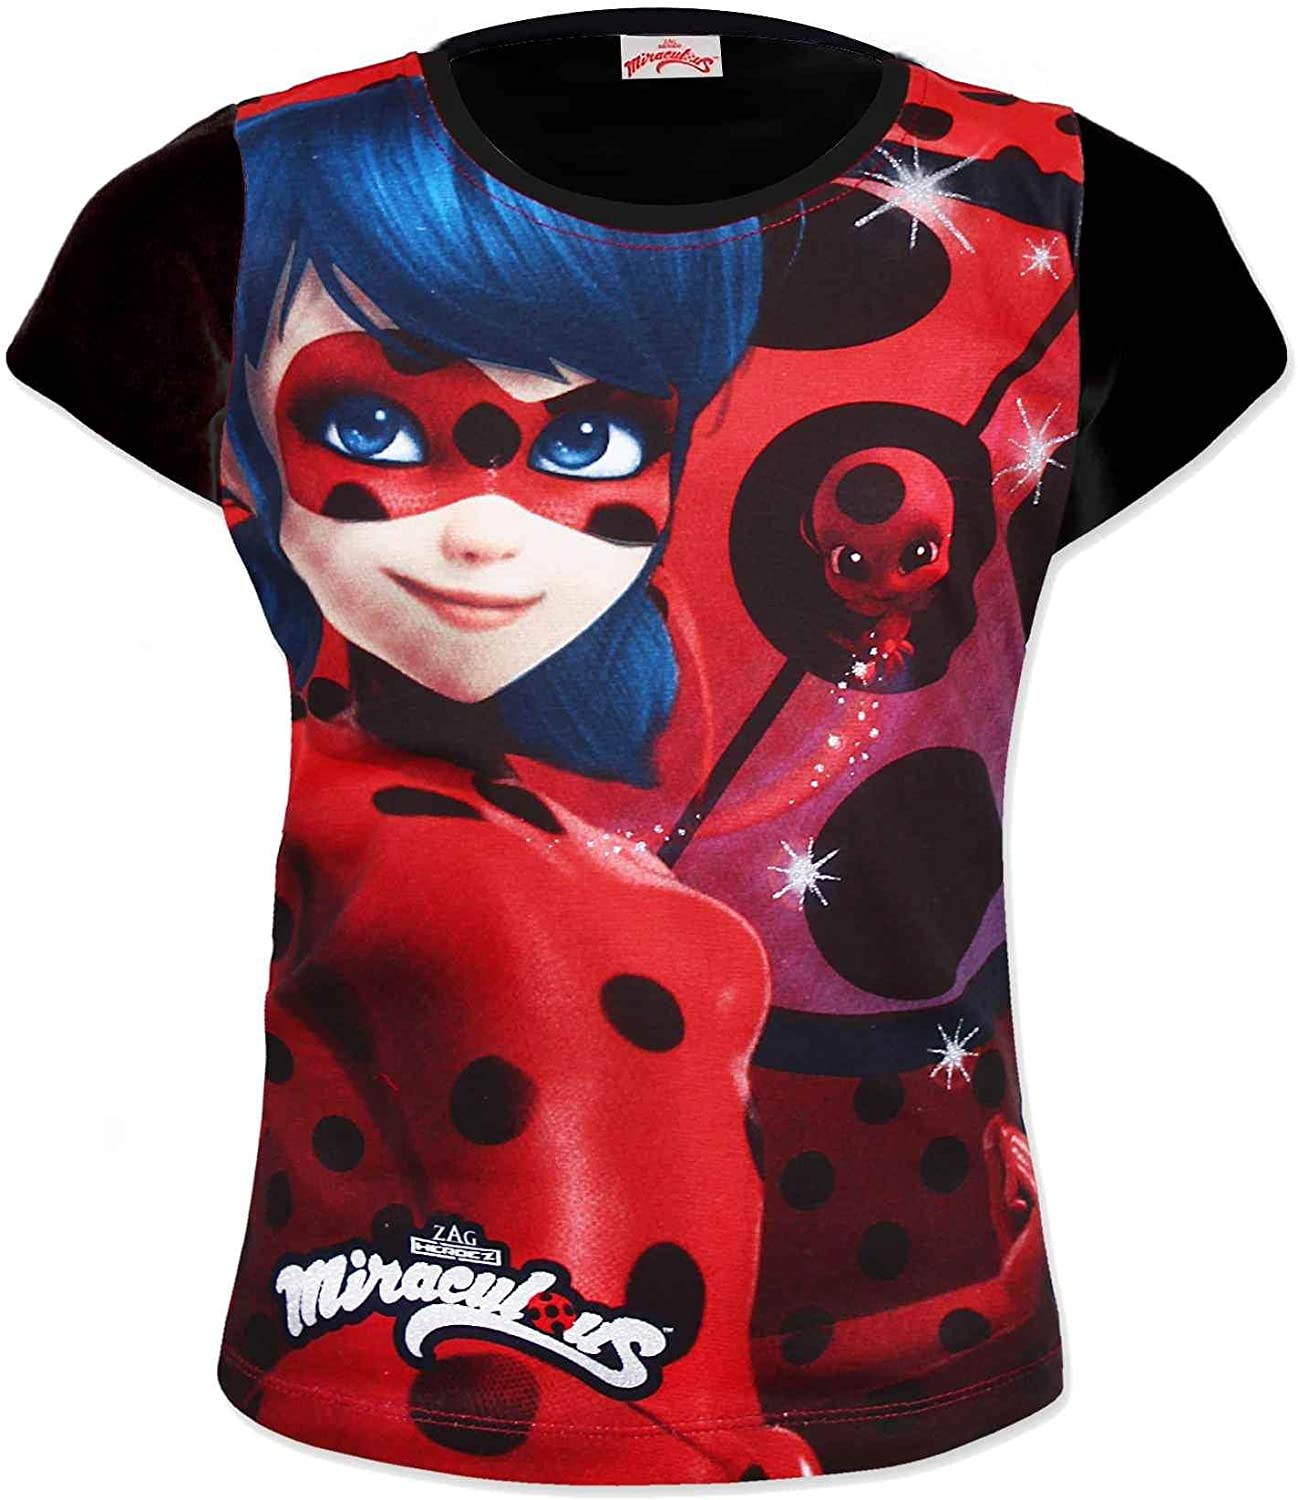 Miraculous Ladybug Girls Official Licensed Tshirt